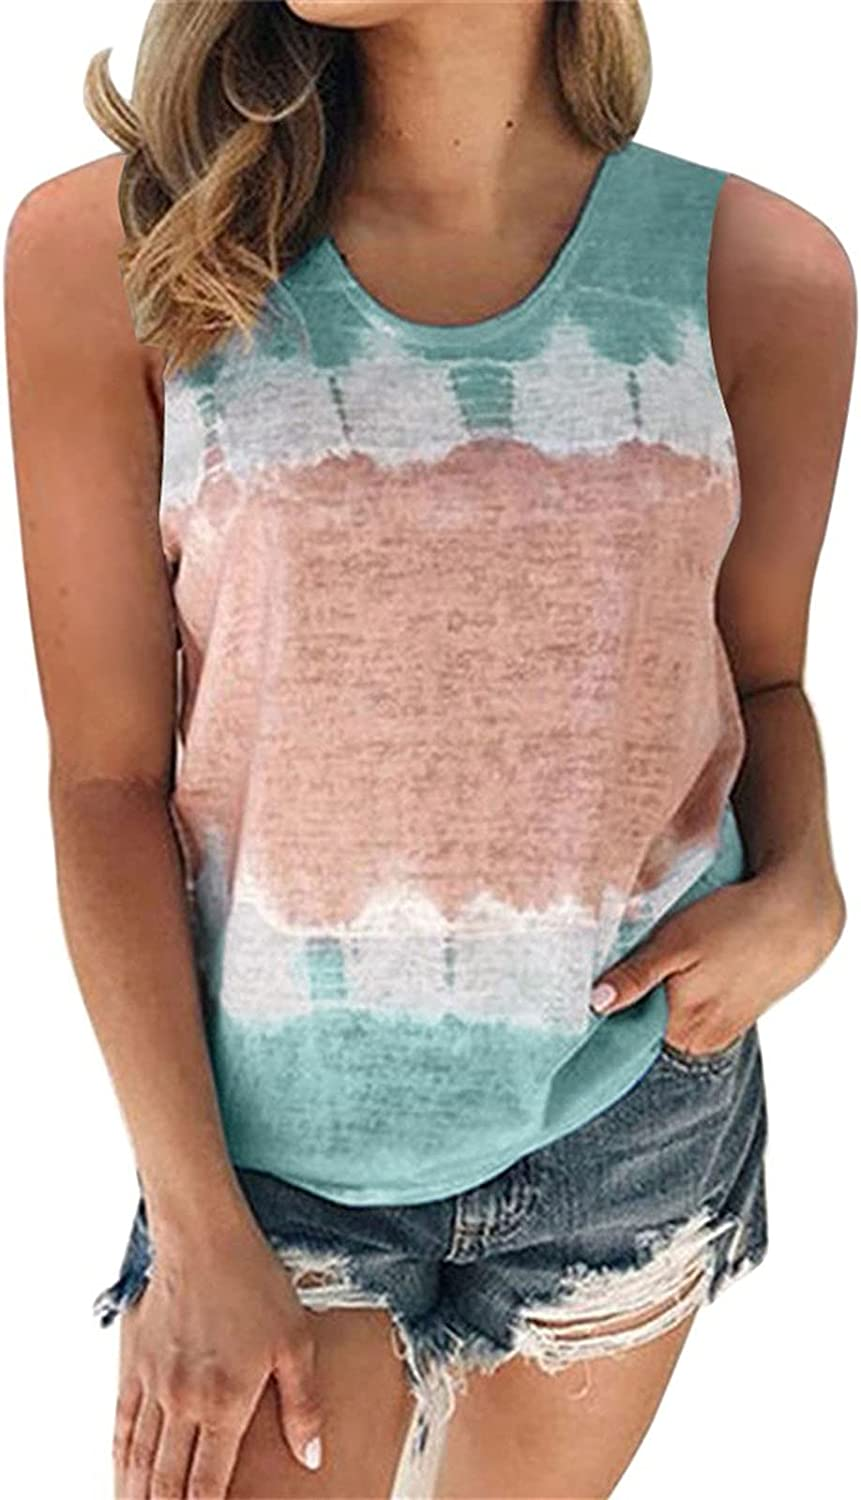 ovticza Plus Size Tank Tops for Women Tie-dye Print Loose Fitted Camisole Summer Casual Crew Neck Camis Vest